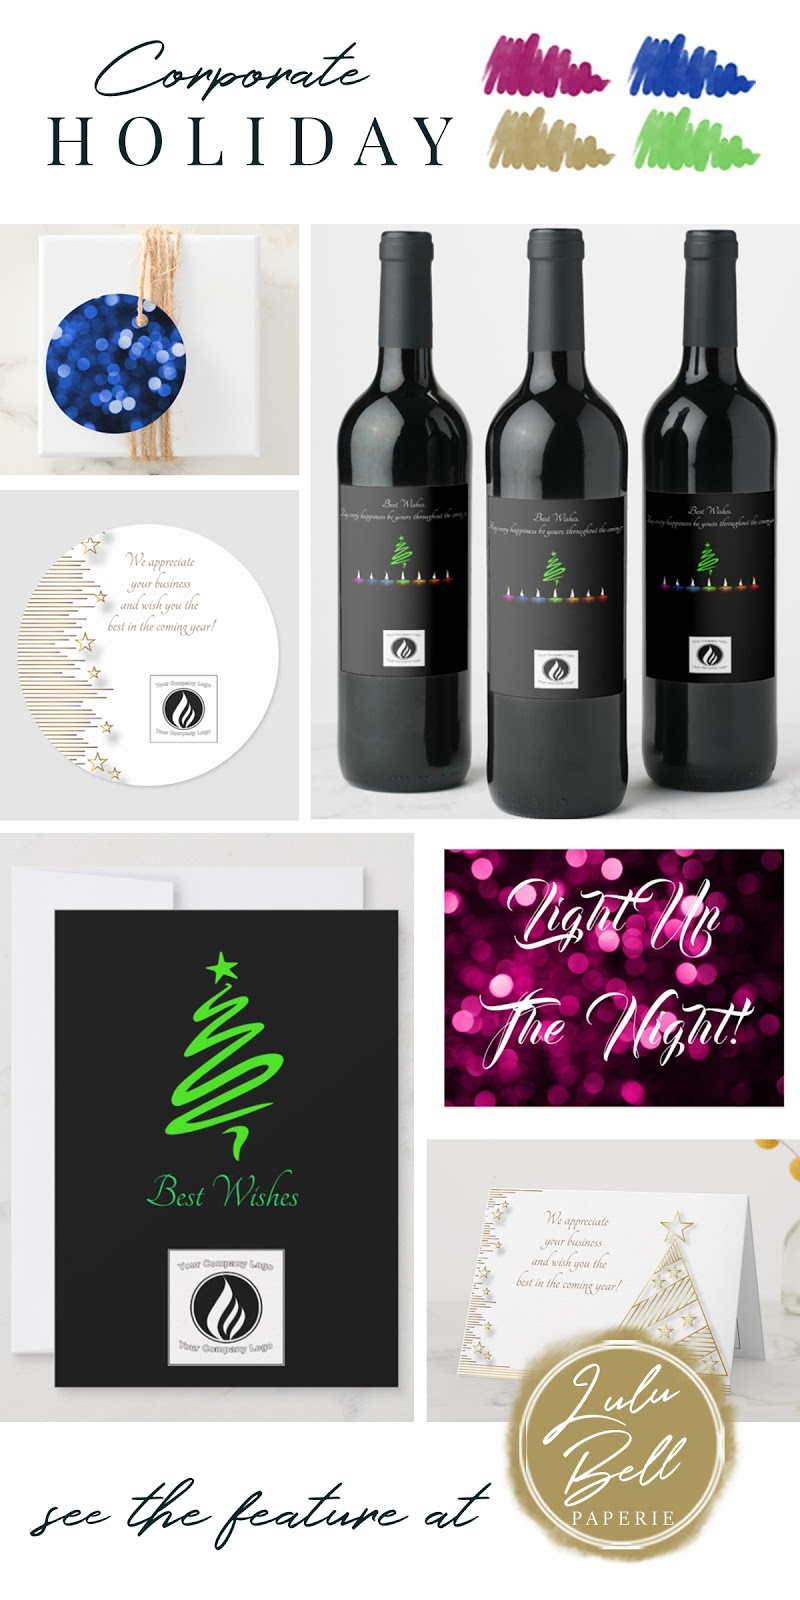 Royal Blue Gold and Green Corporate Christmas Color Palette Inspiration - Favor Tags, Wine Labels, Stickers, and Greeting Cards